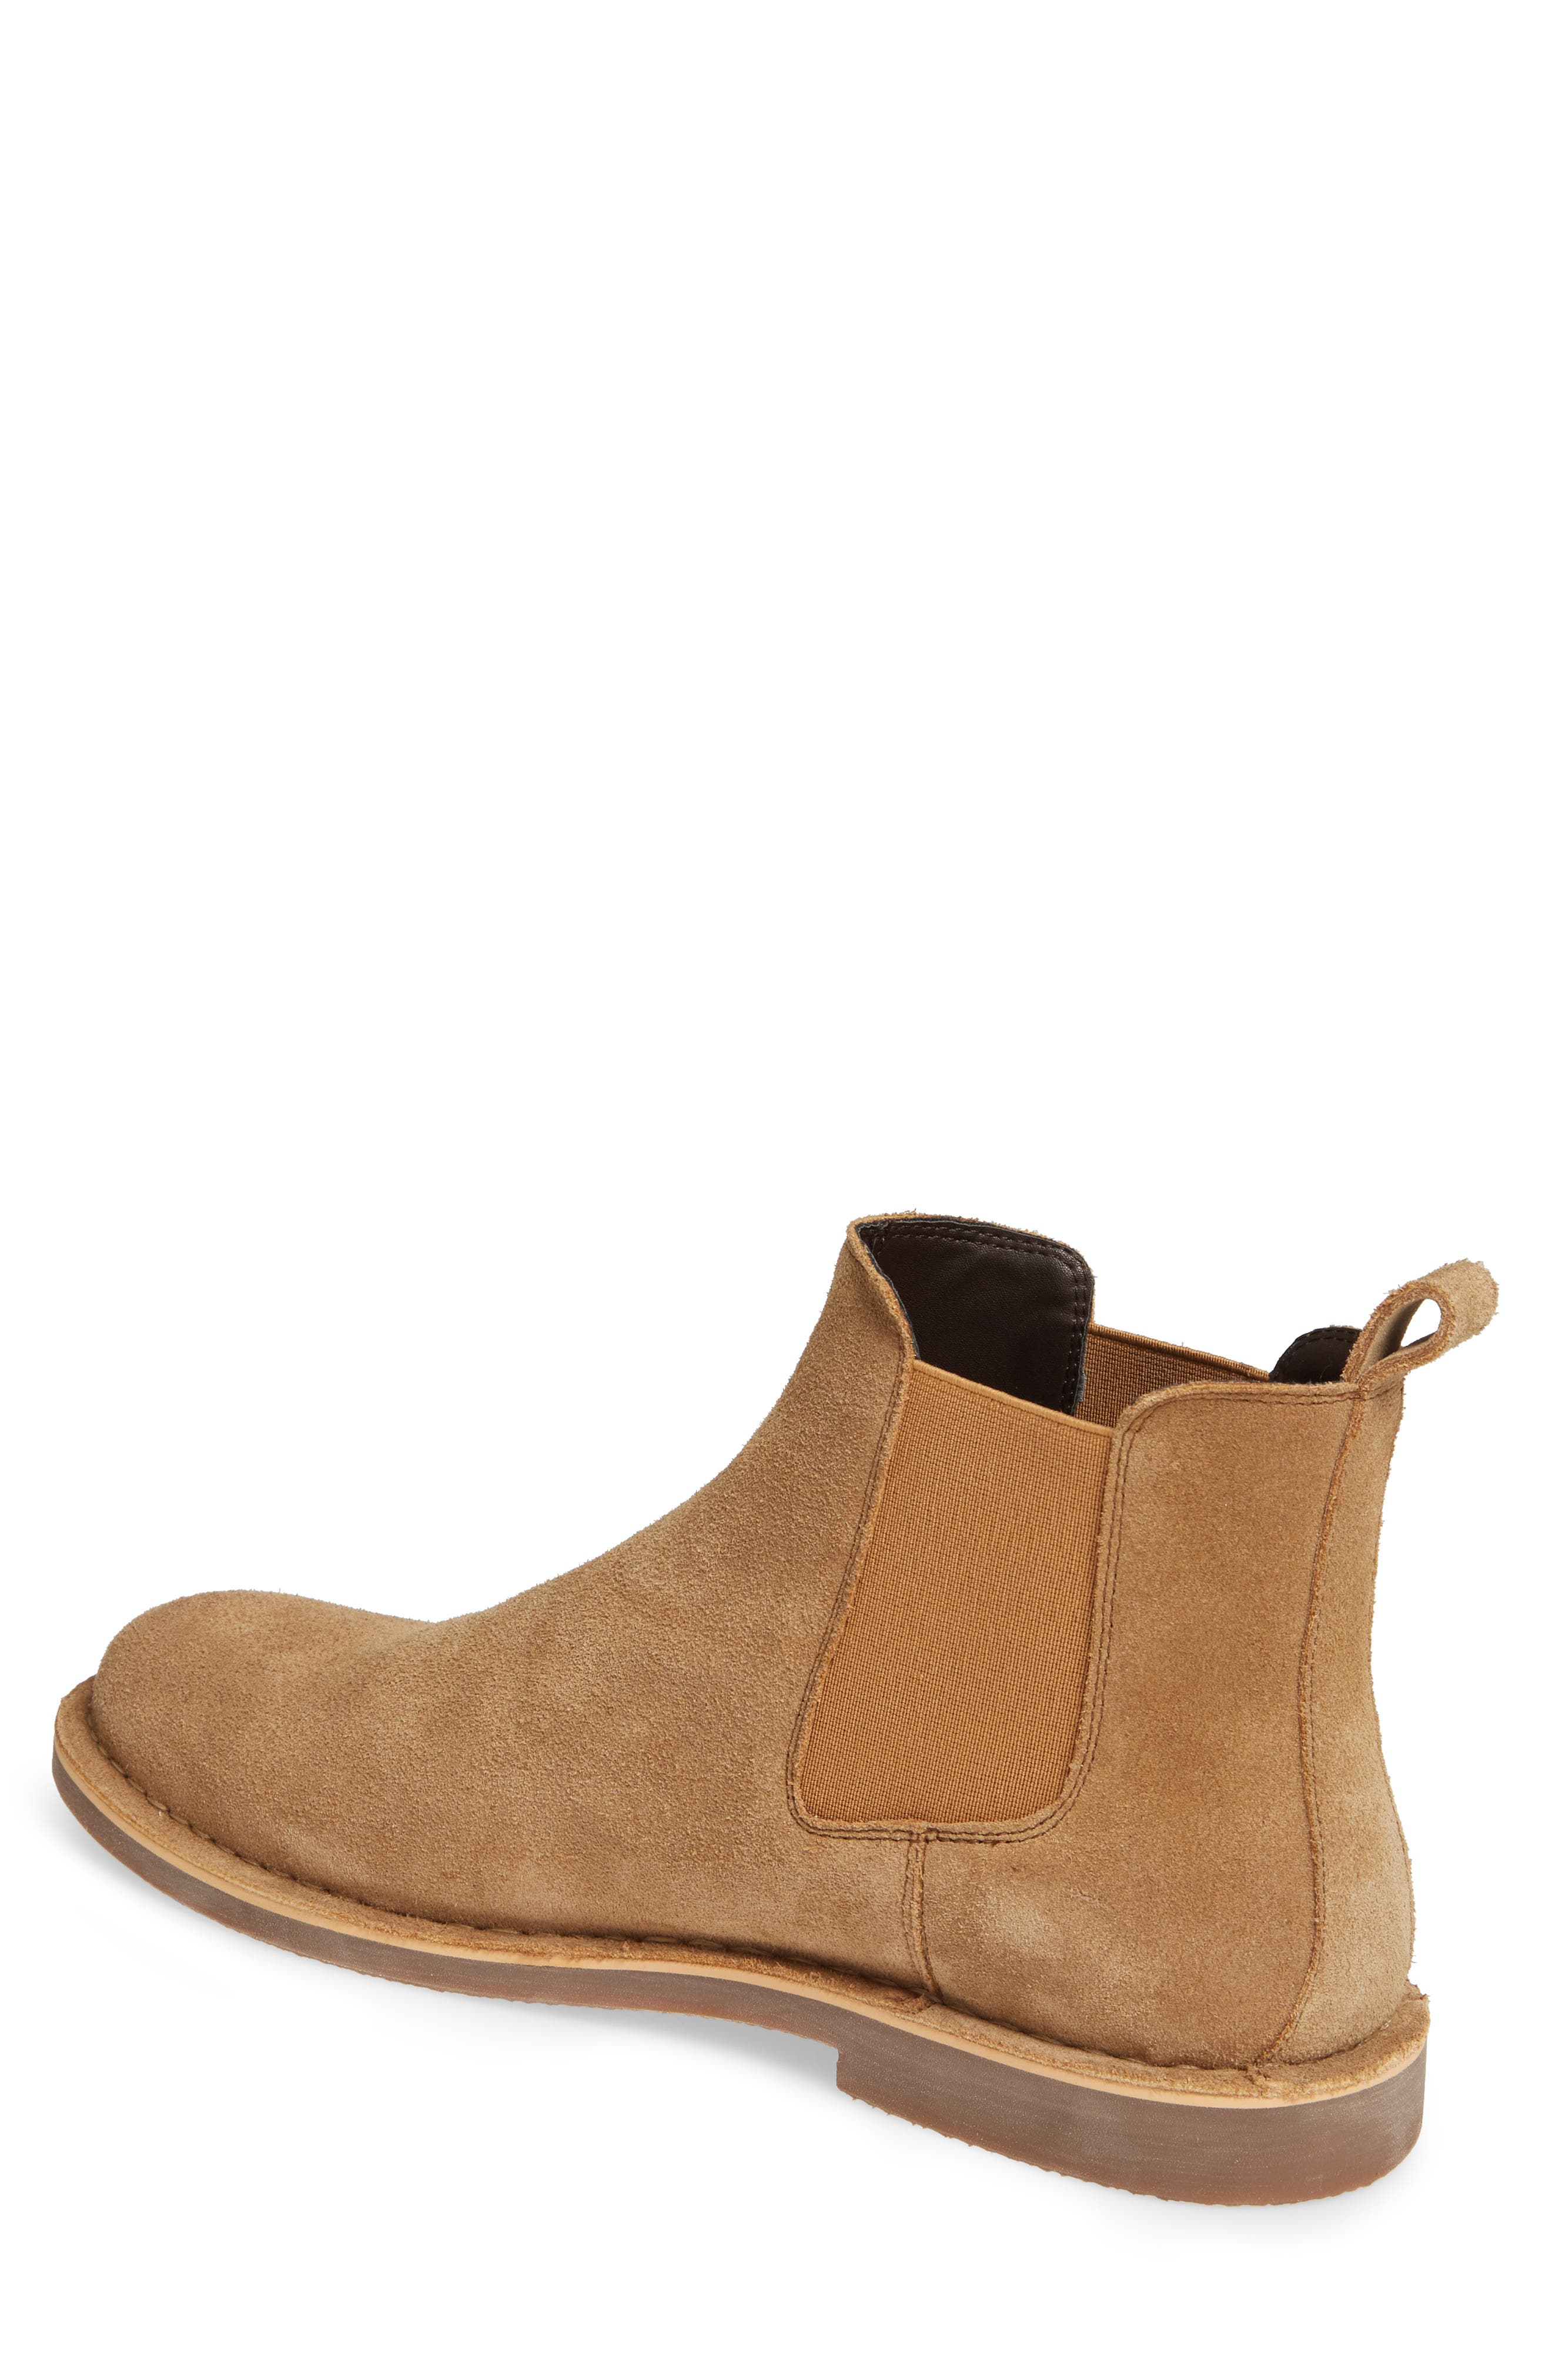 THE RAIL, Payson Chelsea Boot, Alternate thumbnail 2, color, SAND SUEDE